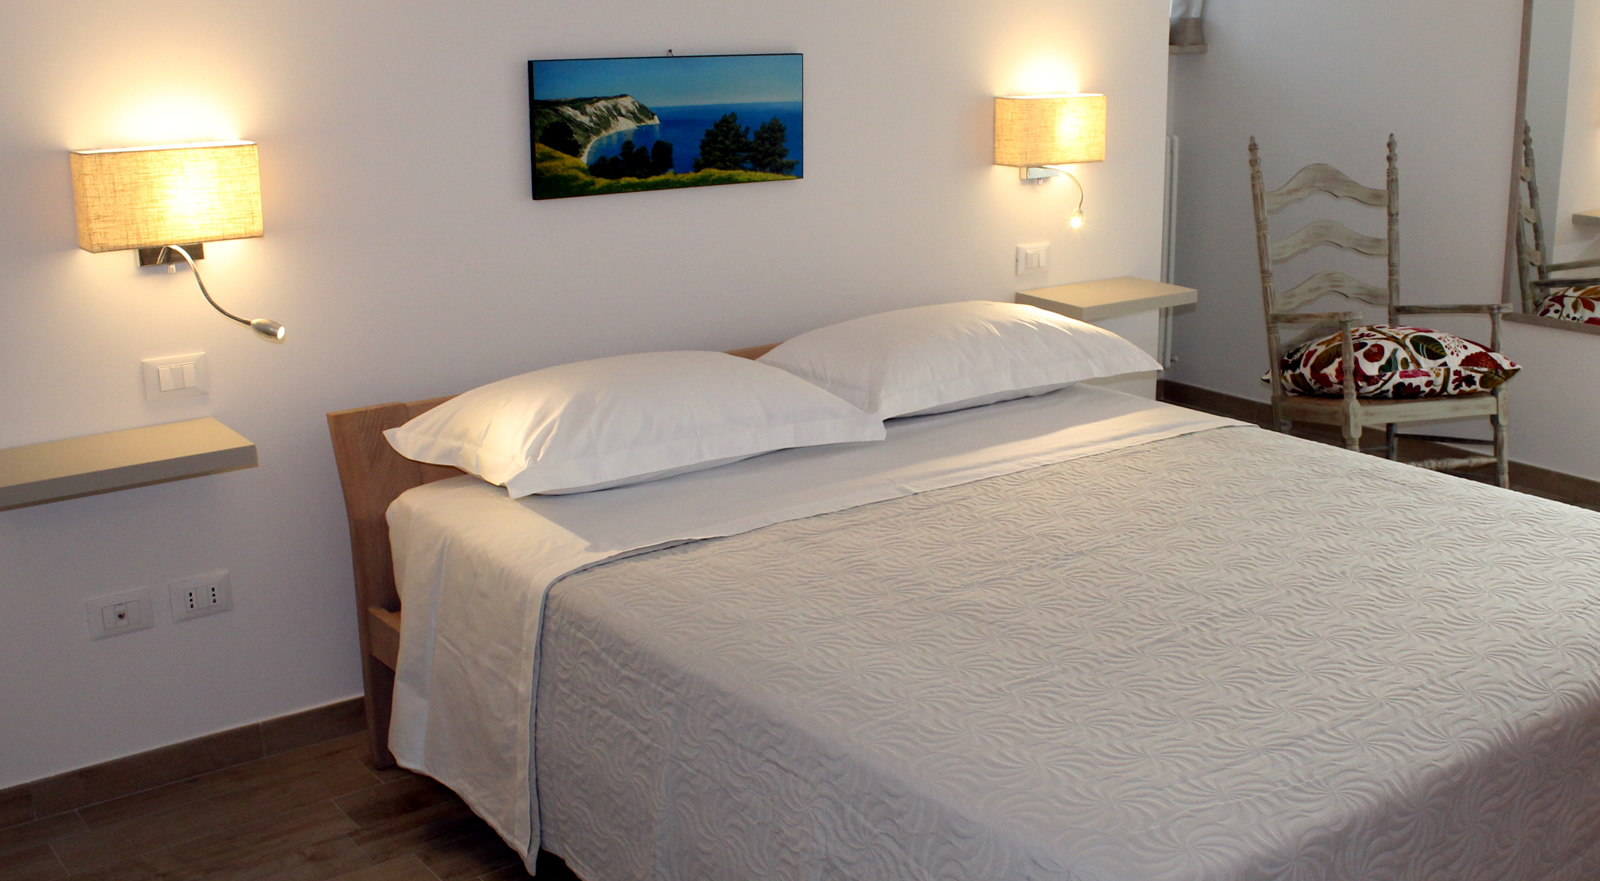 villa de ruschi guest house ancona bed and breakfast